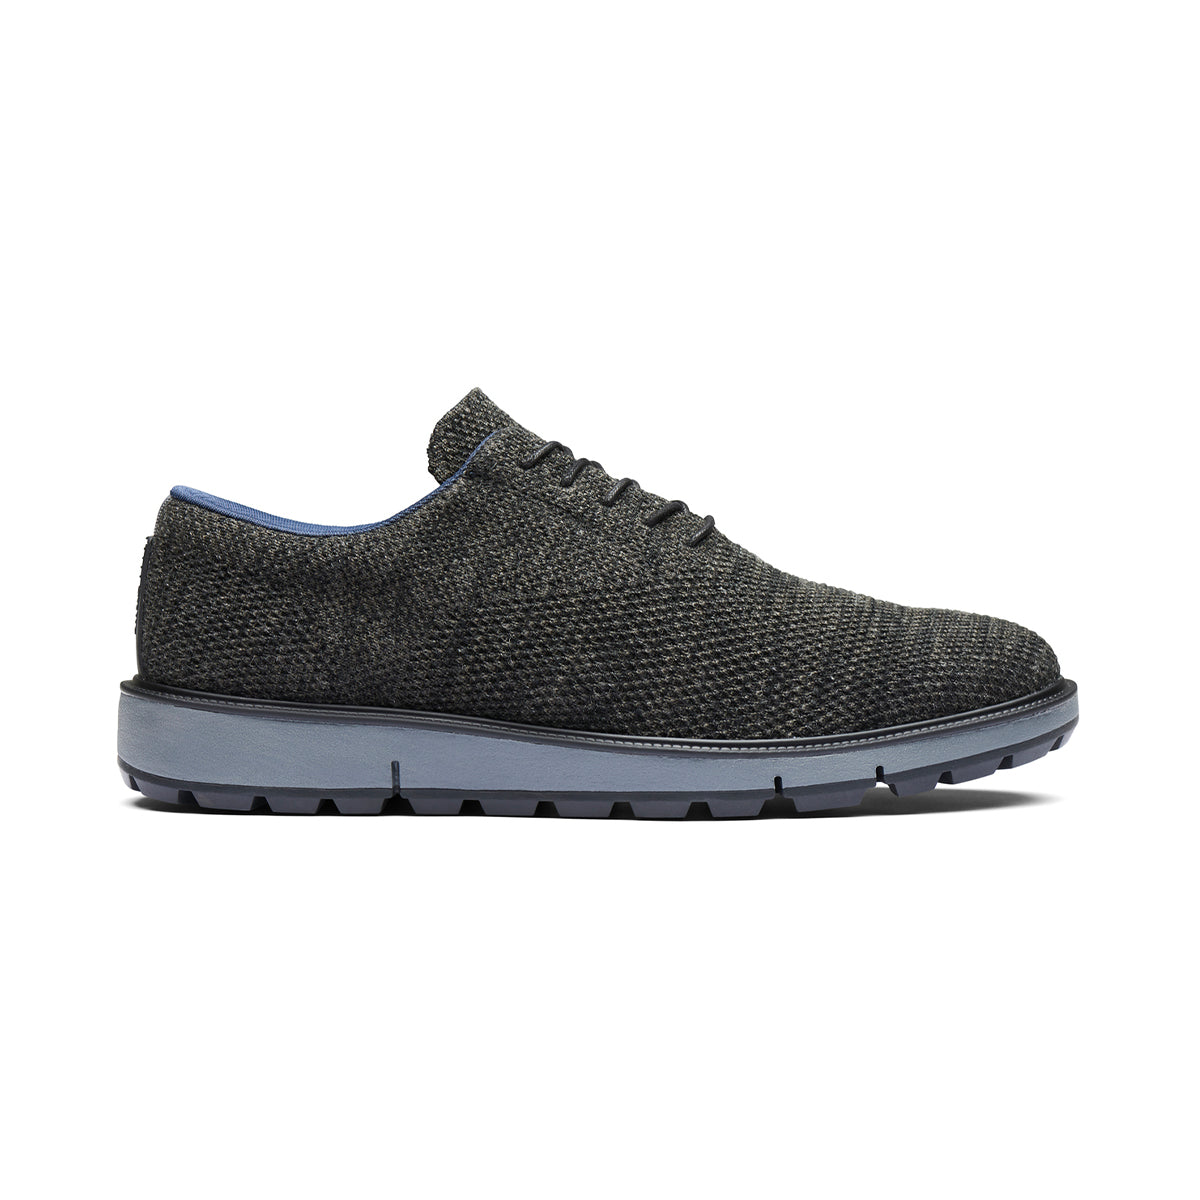 Motion Knit Wool Plain Toe - background::white,variant::black